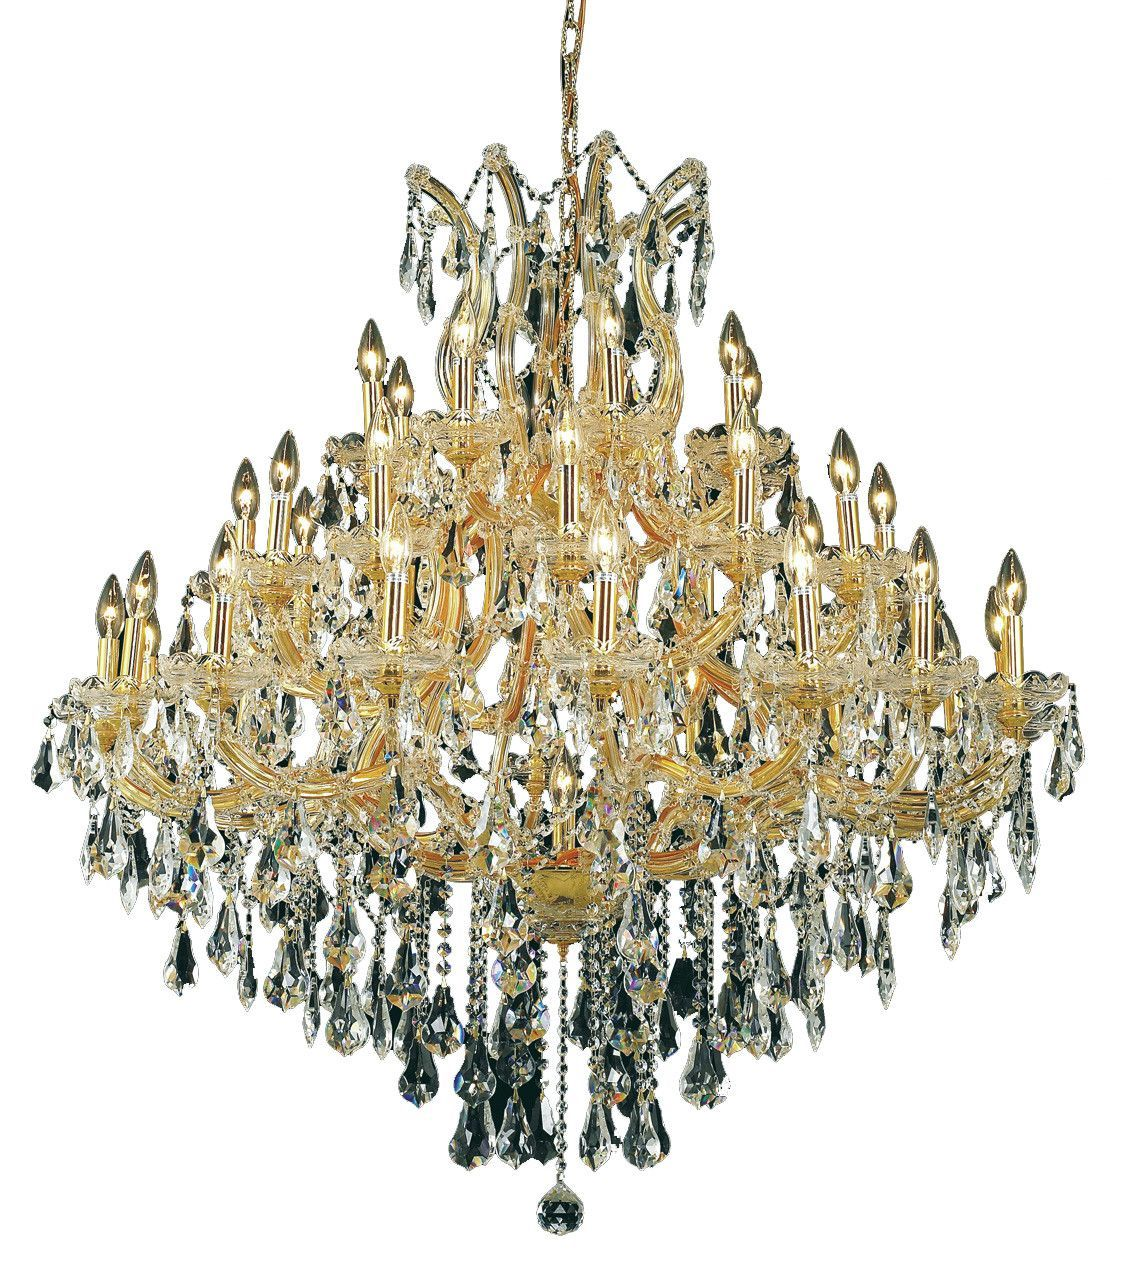 Maria theresa 37 light crystal clear chandelier in gold finish maria theresa 37 light crystal clear chandelier in gold finish 2801g44grc aloadofball Images